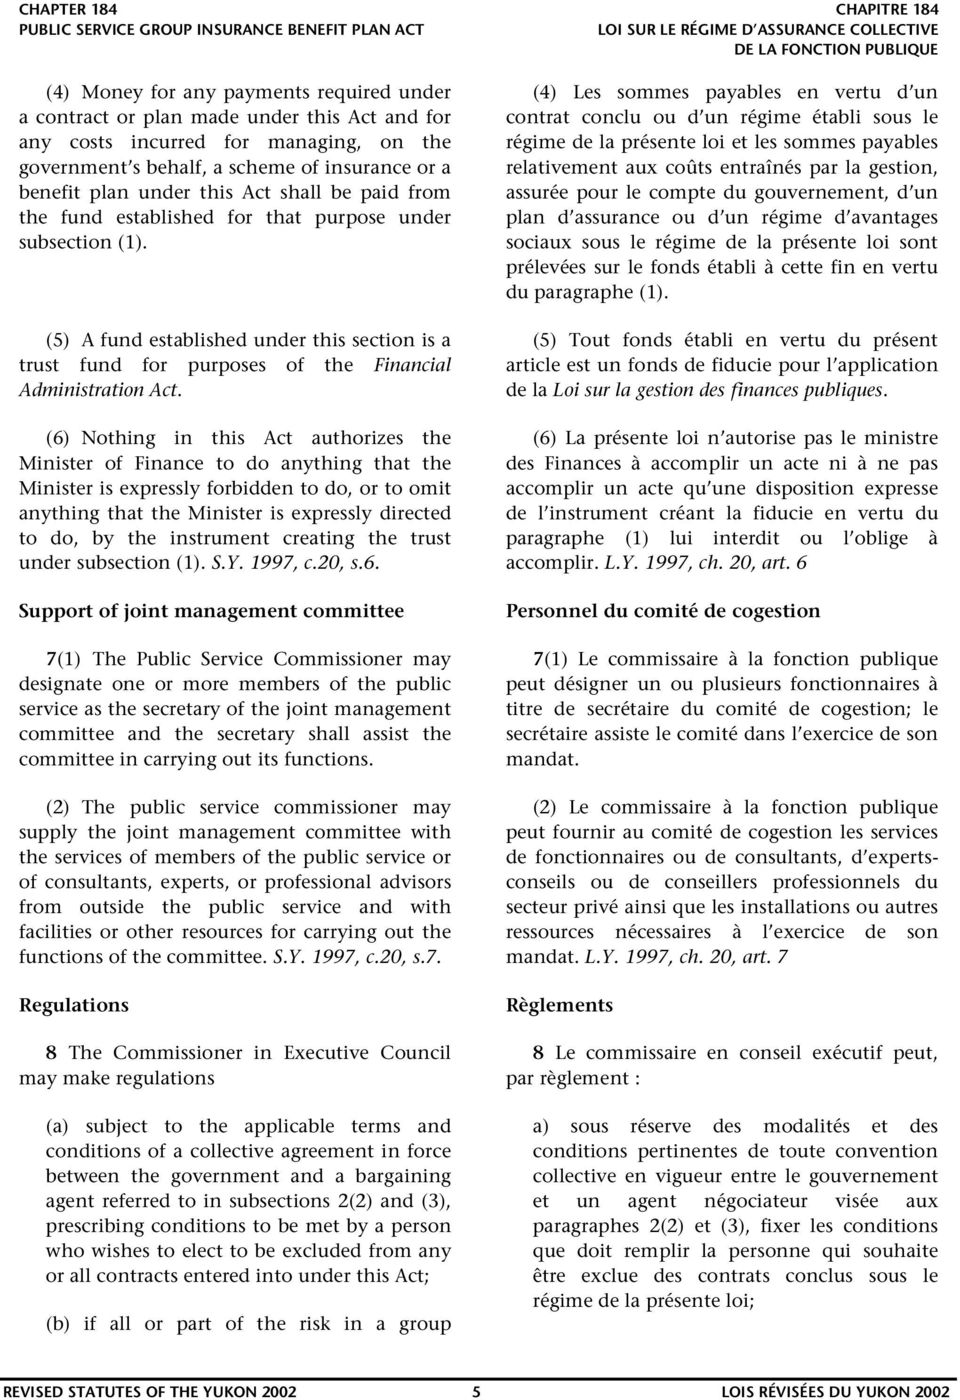 (6) Nothing in this Act authorizes the Minister of Finance to do anything that the Minister is expressly forbidden to do, or to omit anything that the Minister is expressly directed to do, by the